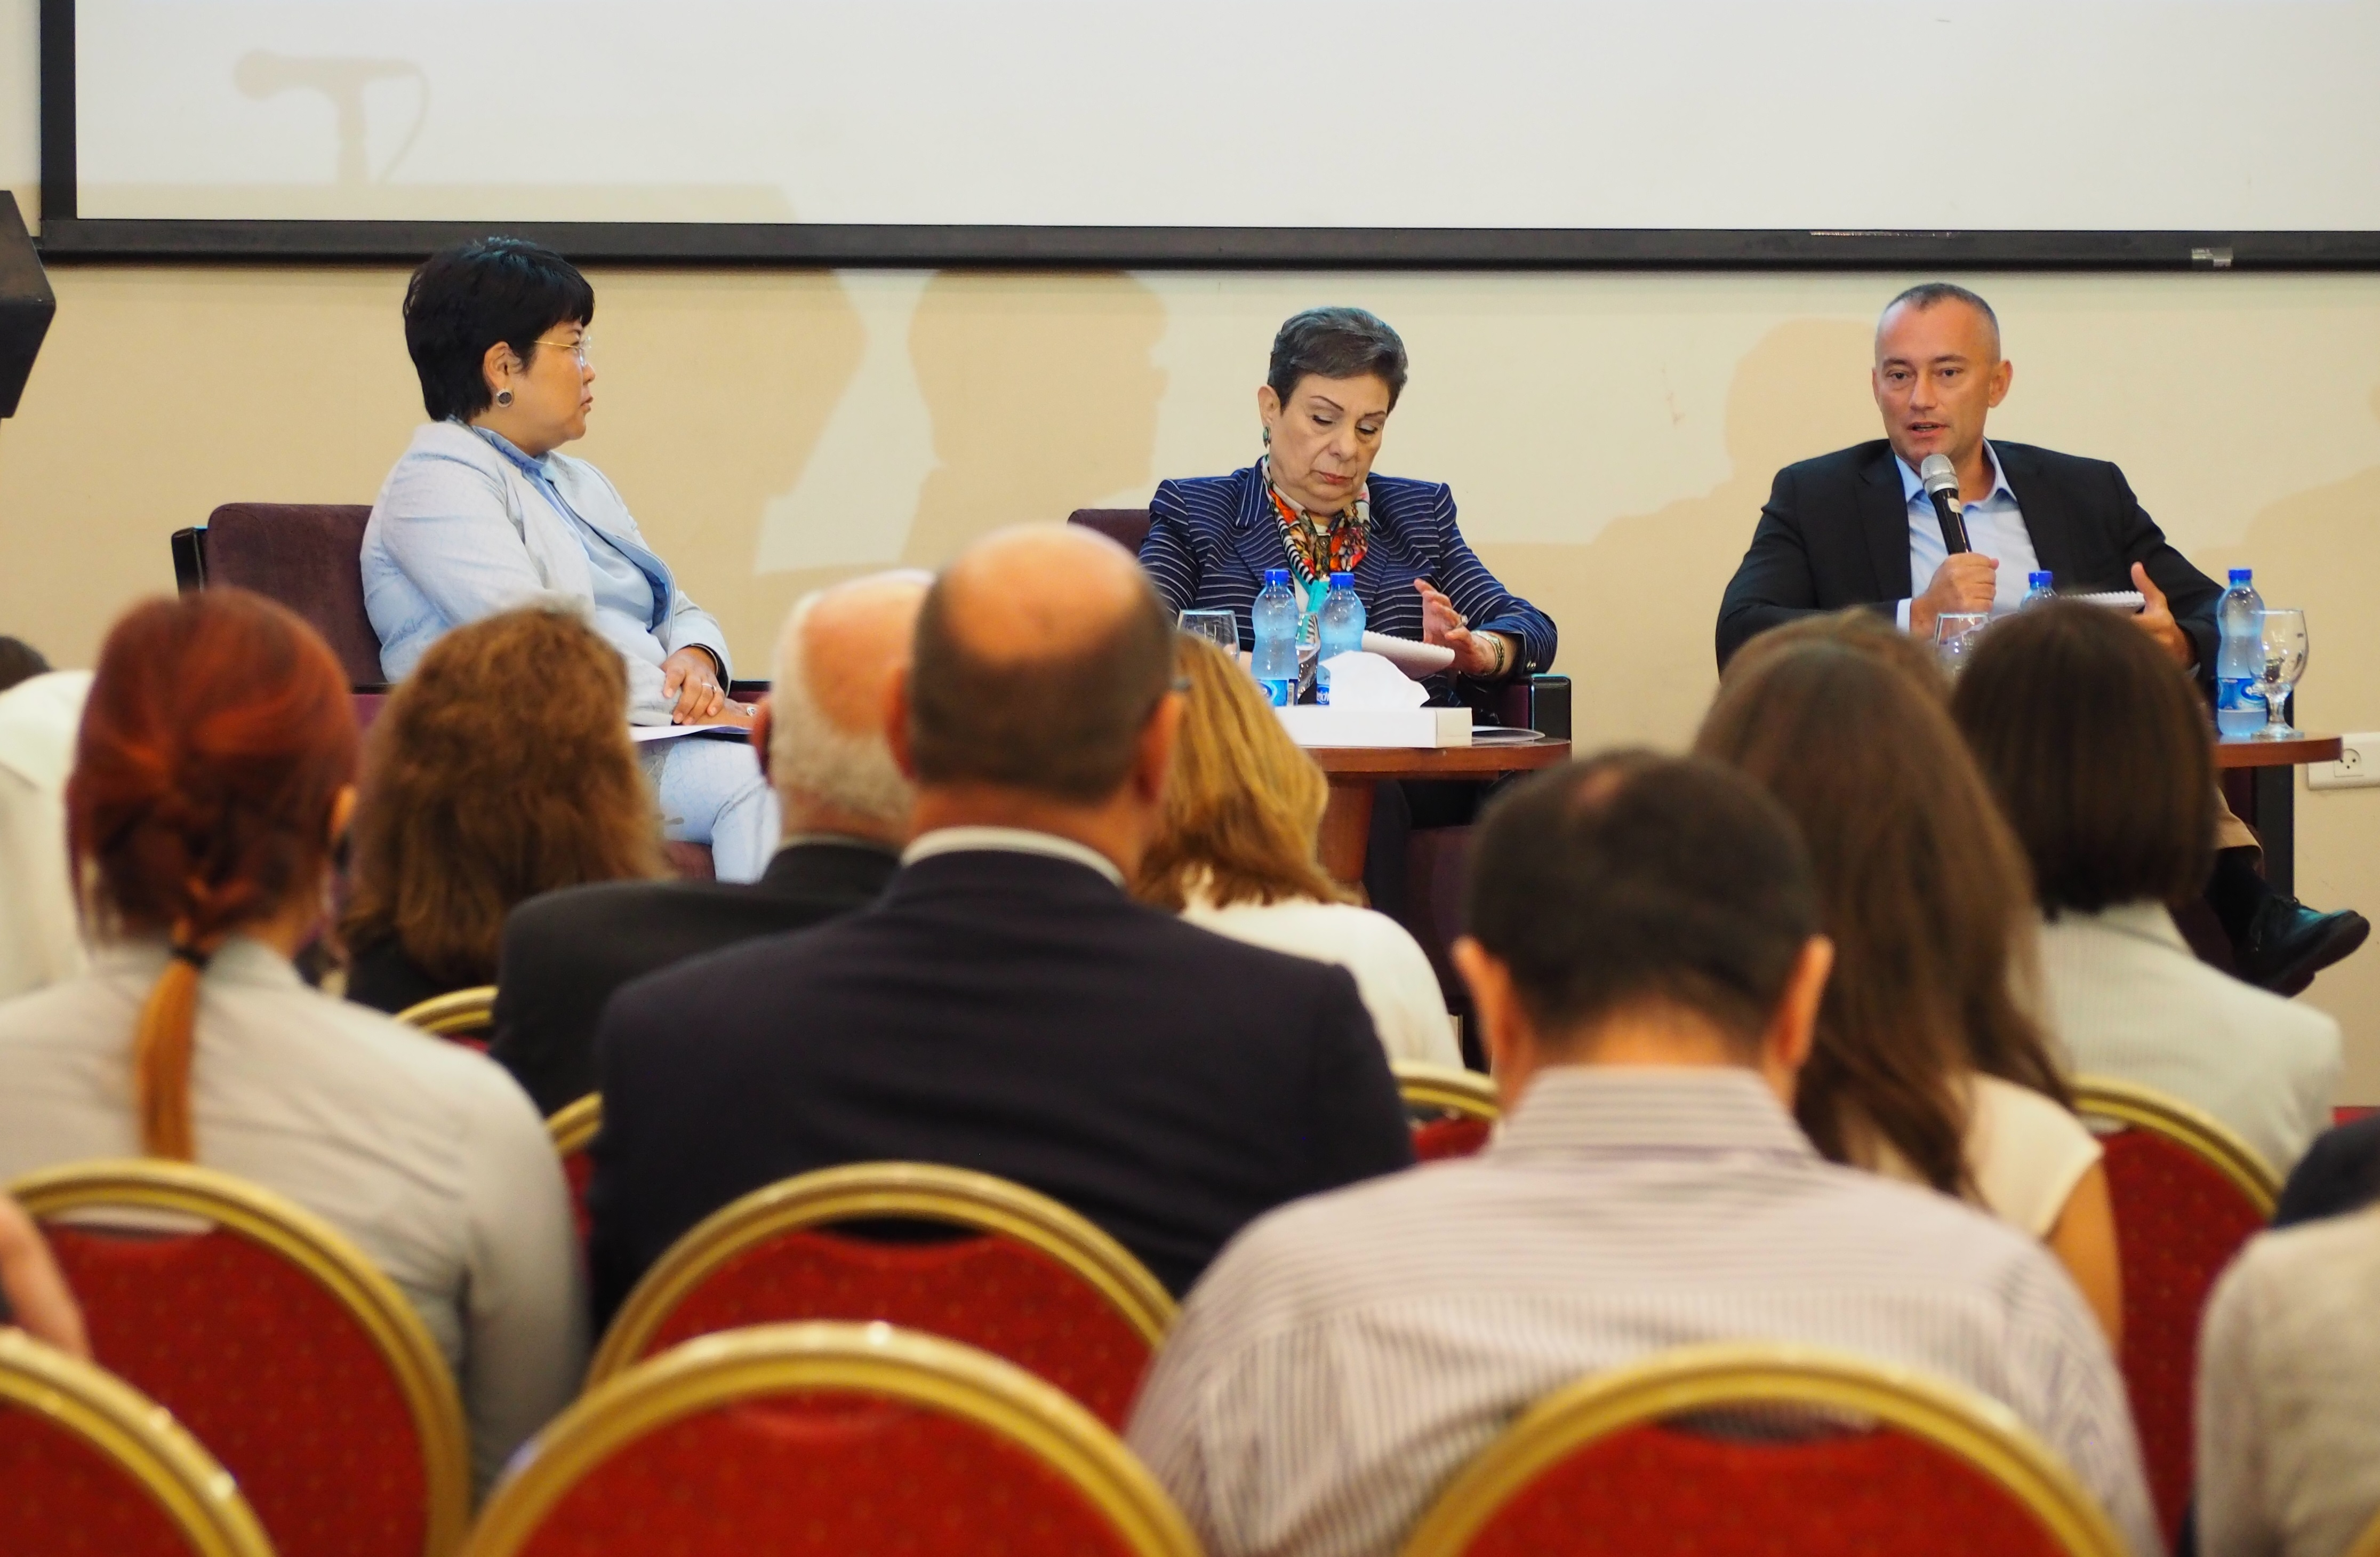 UN's Open Day Event Puts Women in the Center of Peace and Security Agenda in Palestine